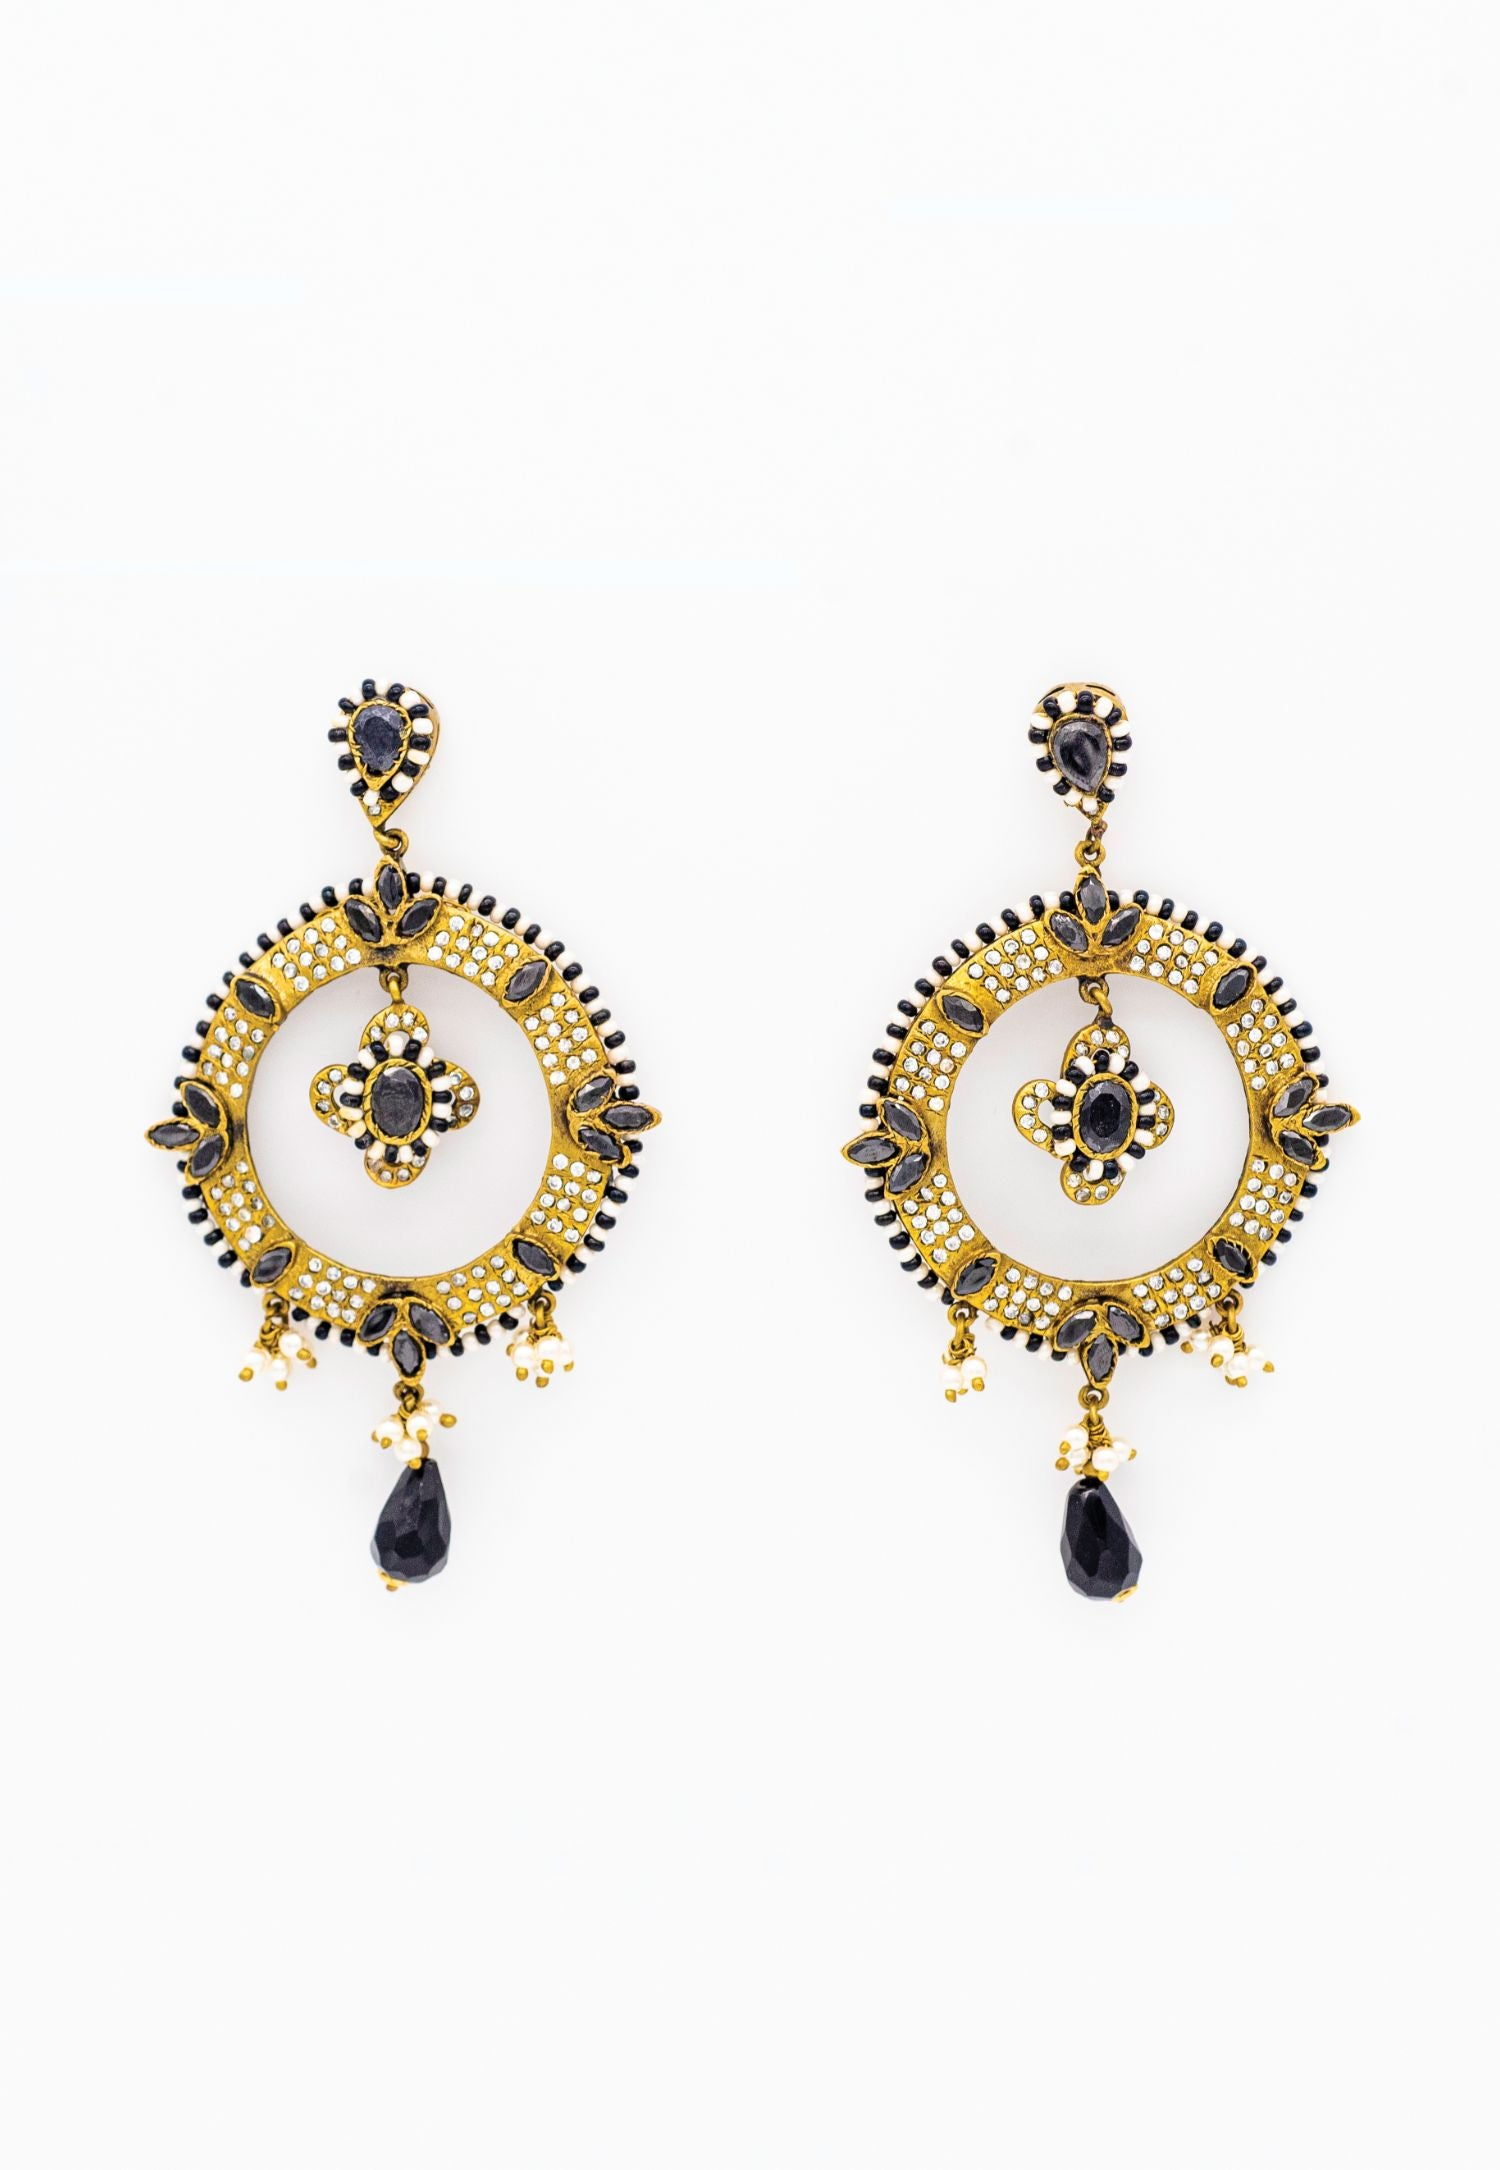 MUTED GOLD EARRINGS WITH PAVÉ WHITE AND BLACK CZ RHINESTONES AND PEARLS